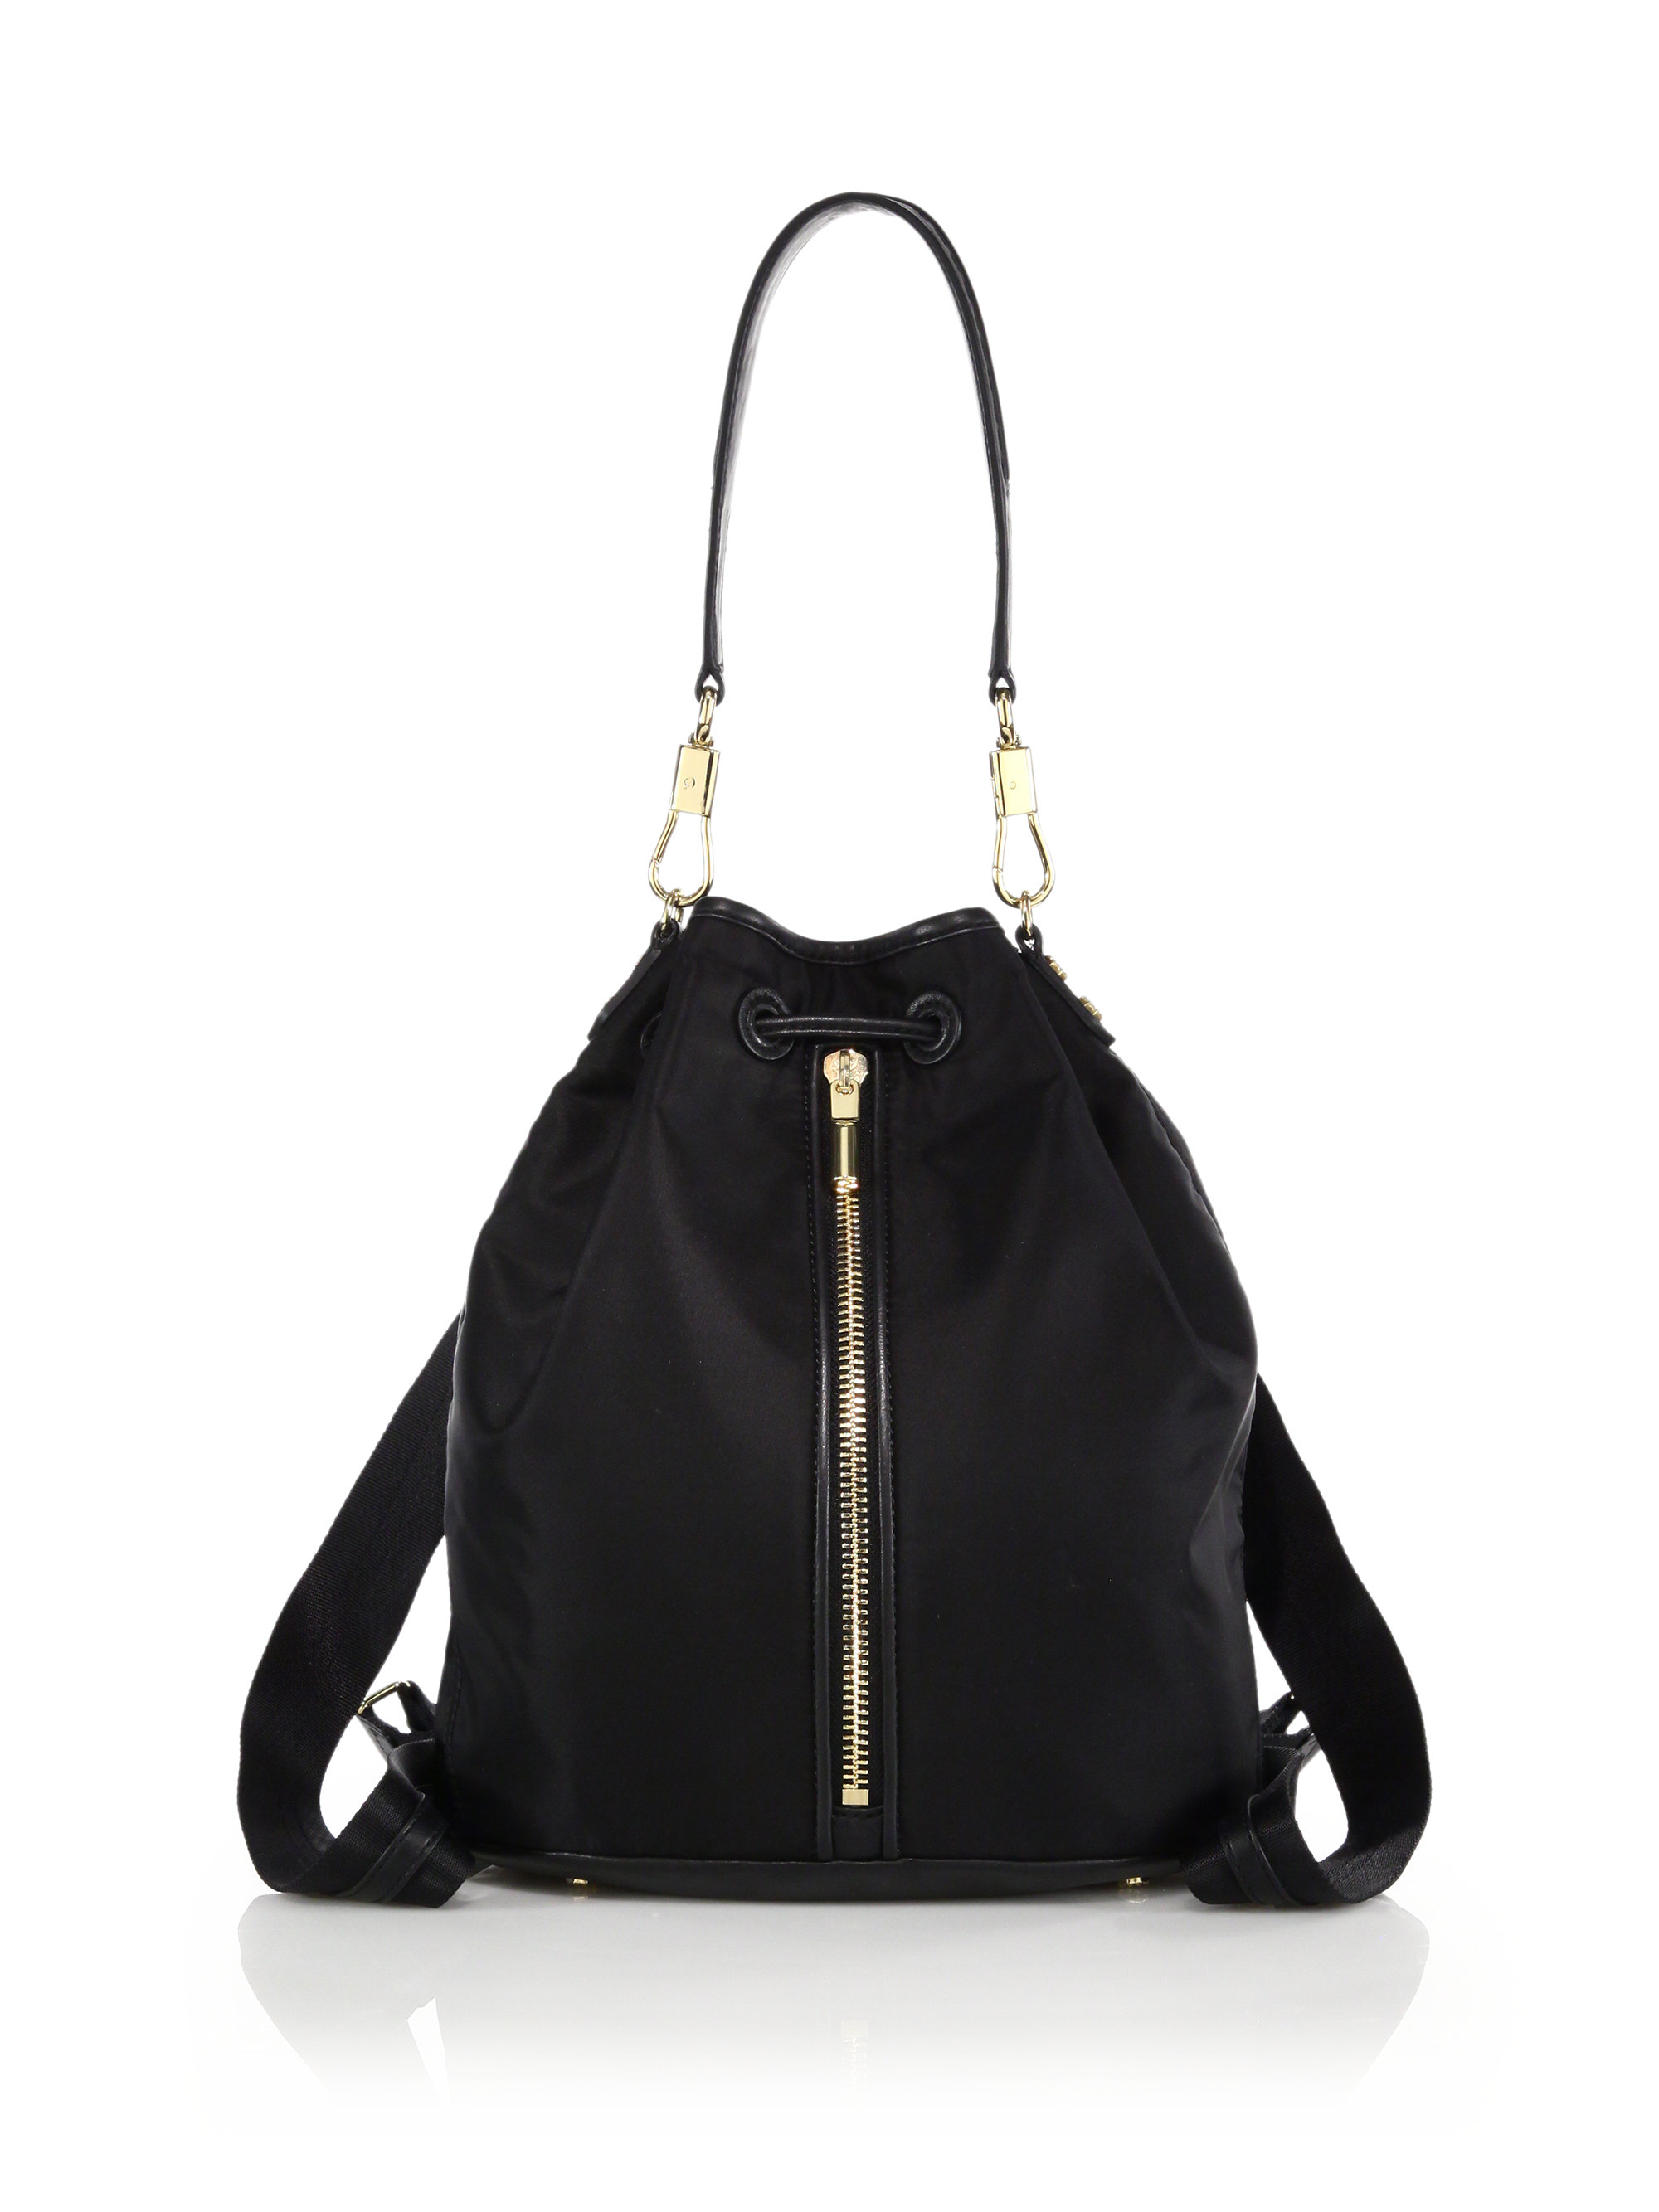 Elizabeth and james Cynnie Sling Nylon & Leather Convertible ...